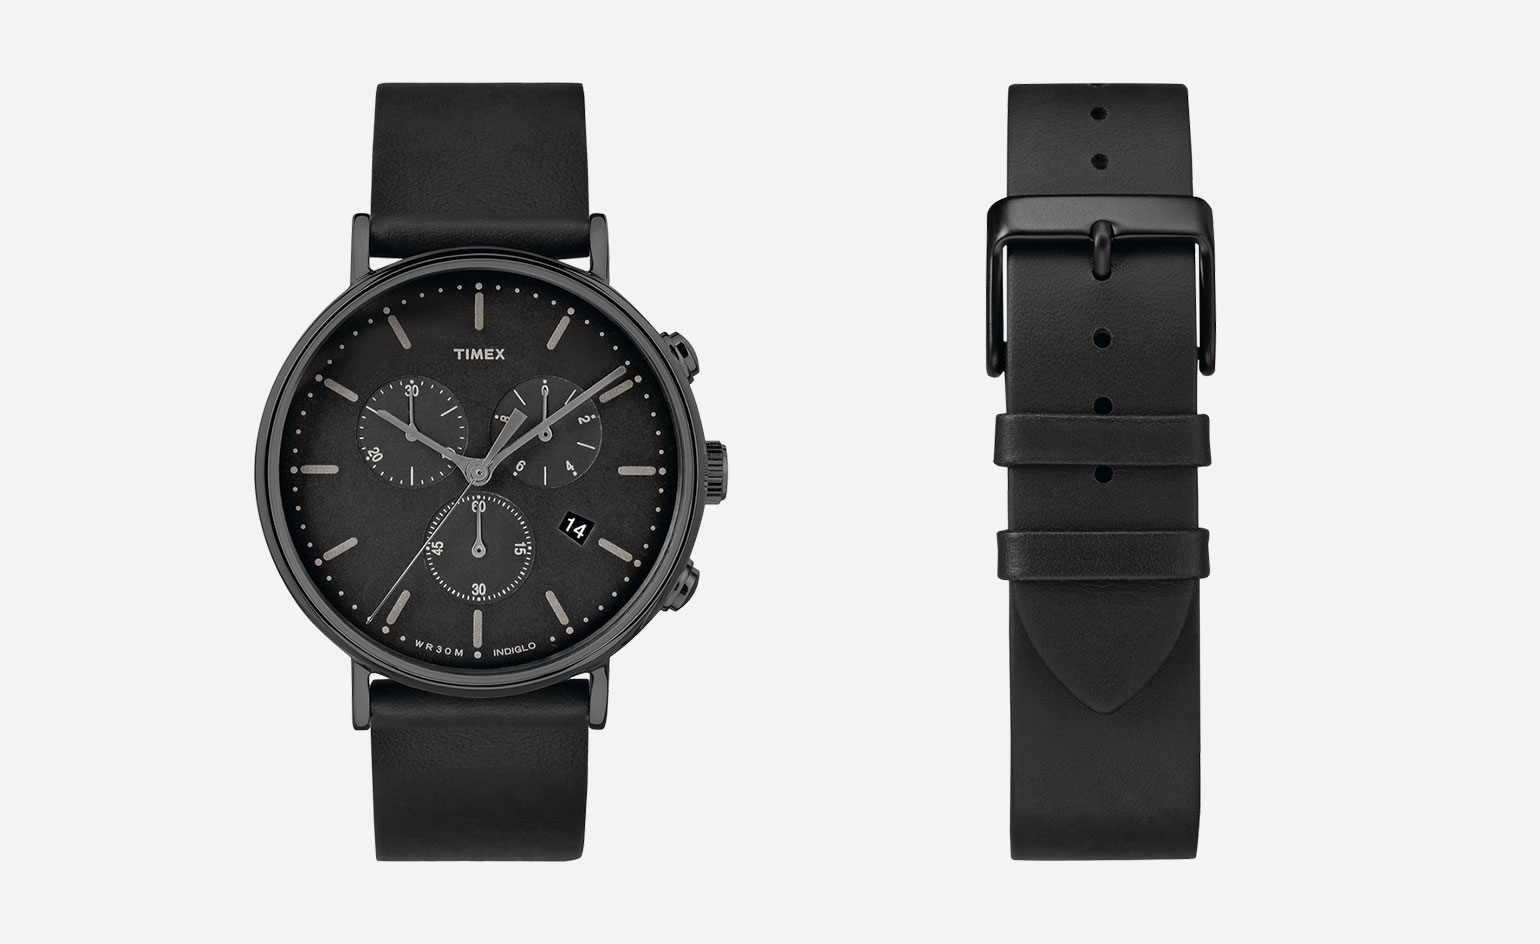 Timex smartwatch with bPay payments chip